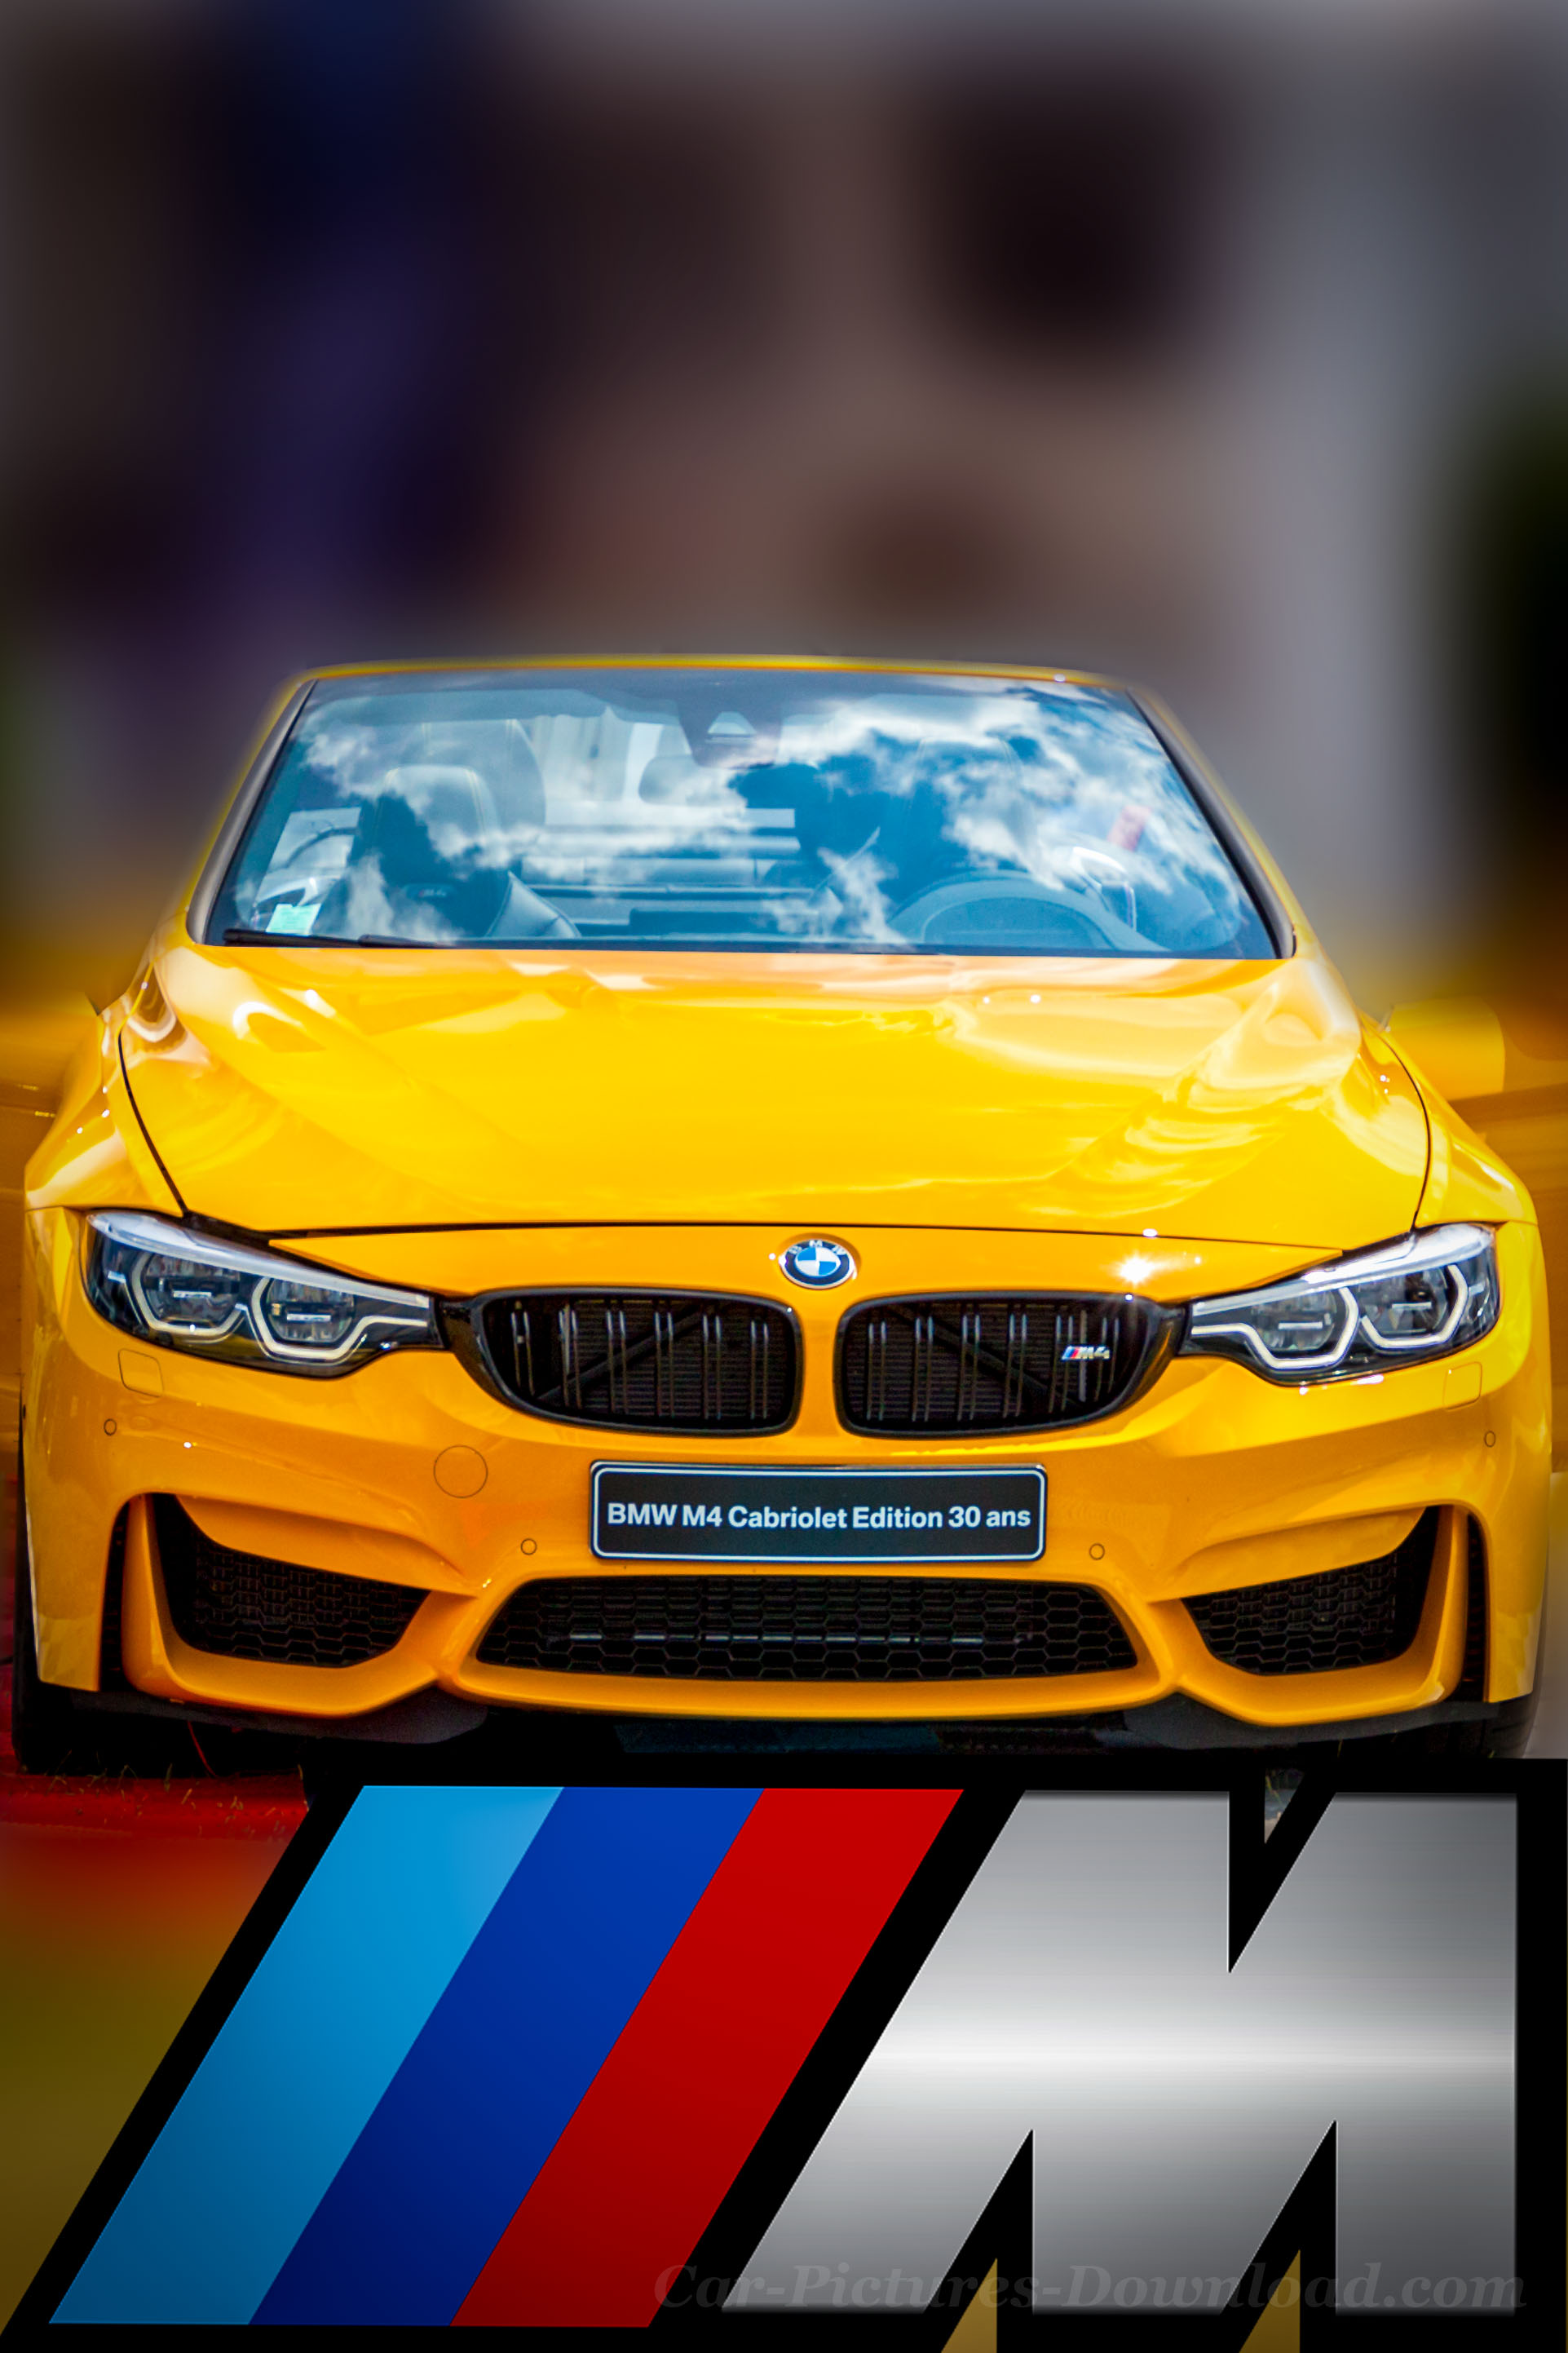 Yellow Bmw M4 Cabriolet Car Wallpaper Android Bmw M5 Wallpaper 4k Yellow 1923x2885 Download Hd Wallpaper Wallpapertip